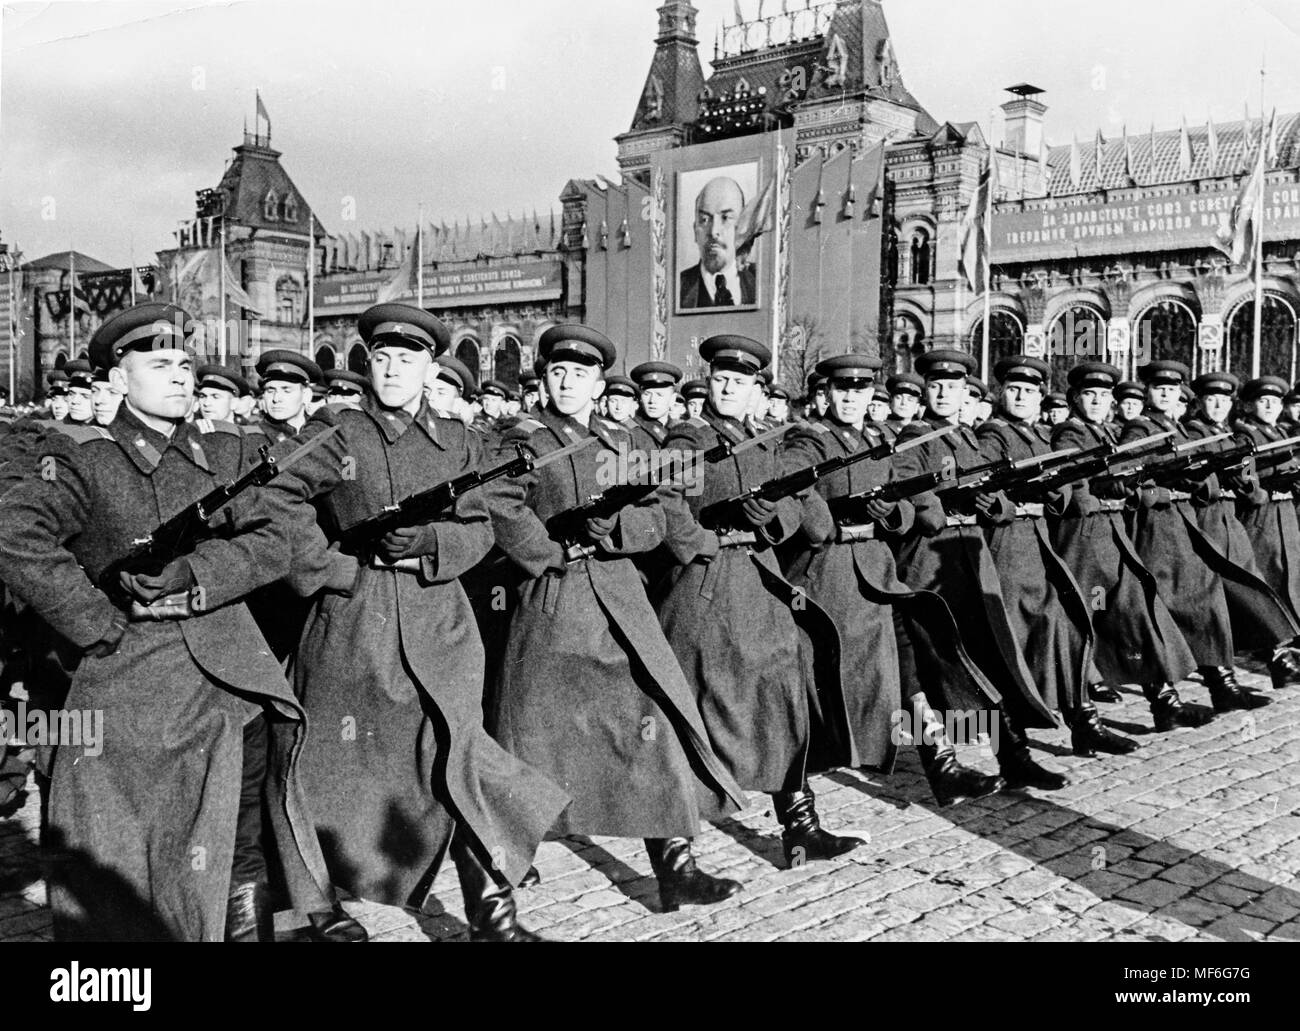 army parade, Red Square, Moscow, Russia, 70s - Stock Image